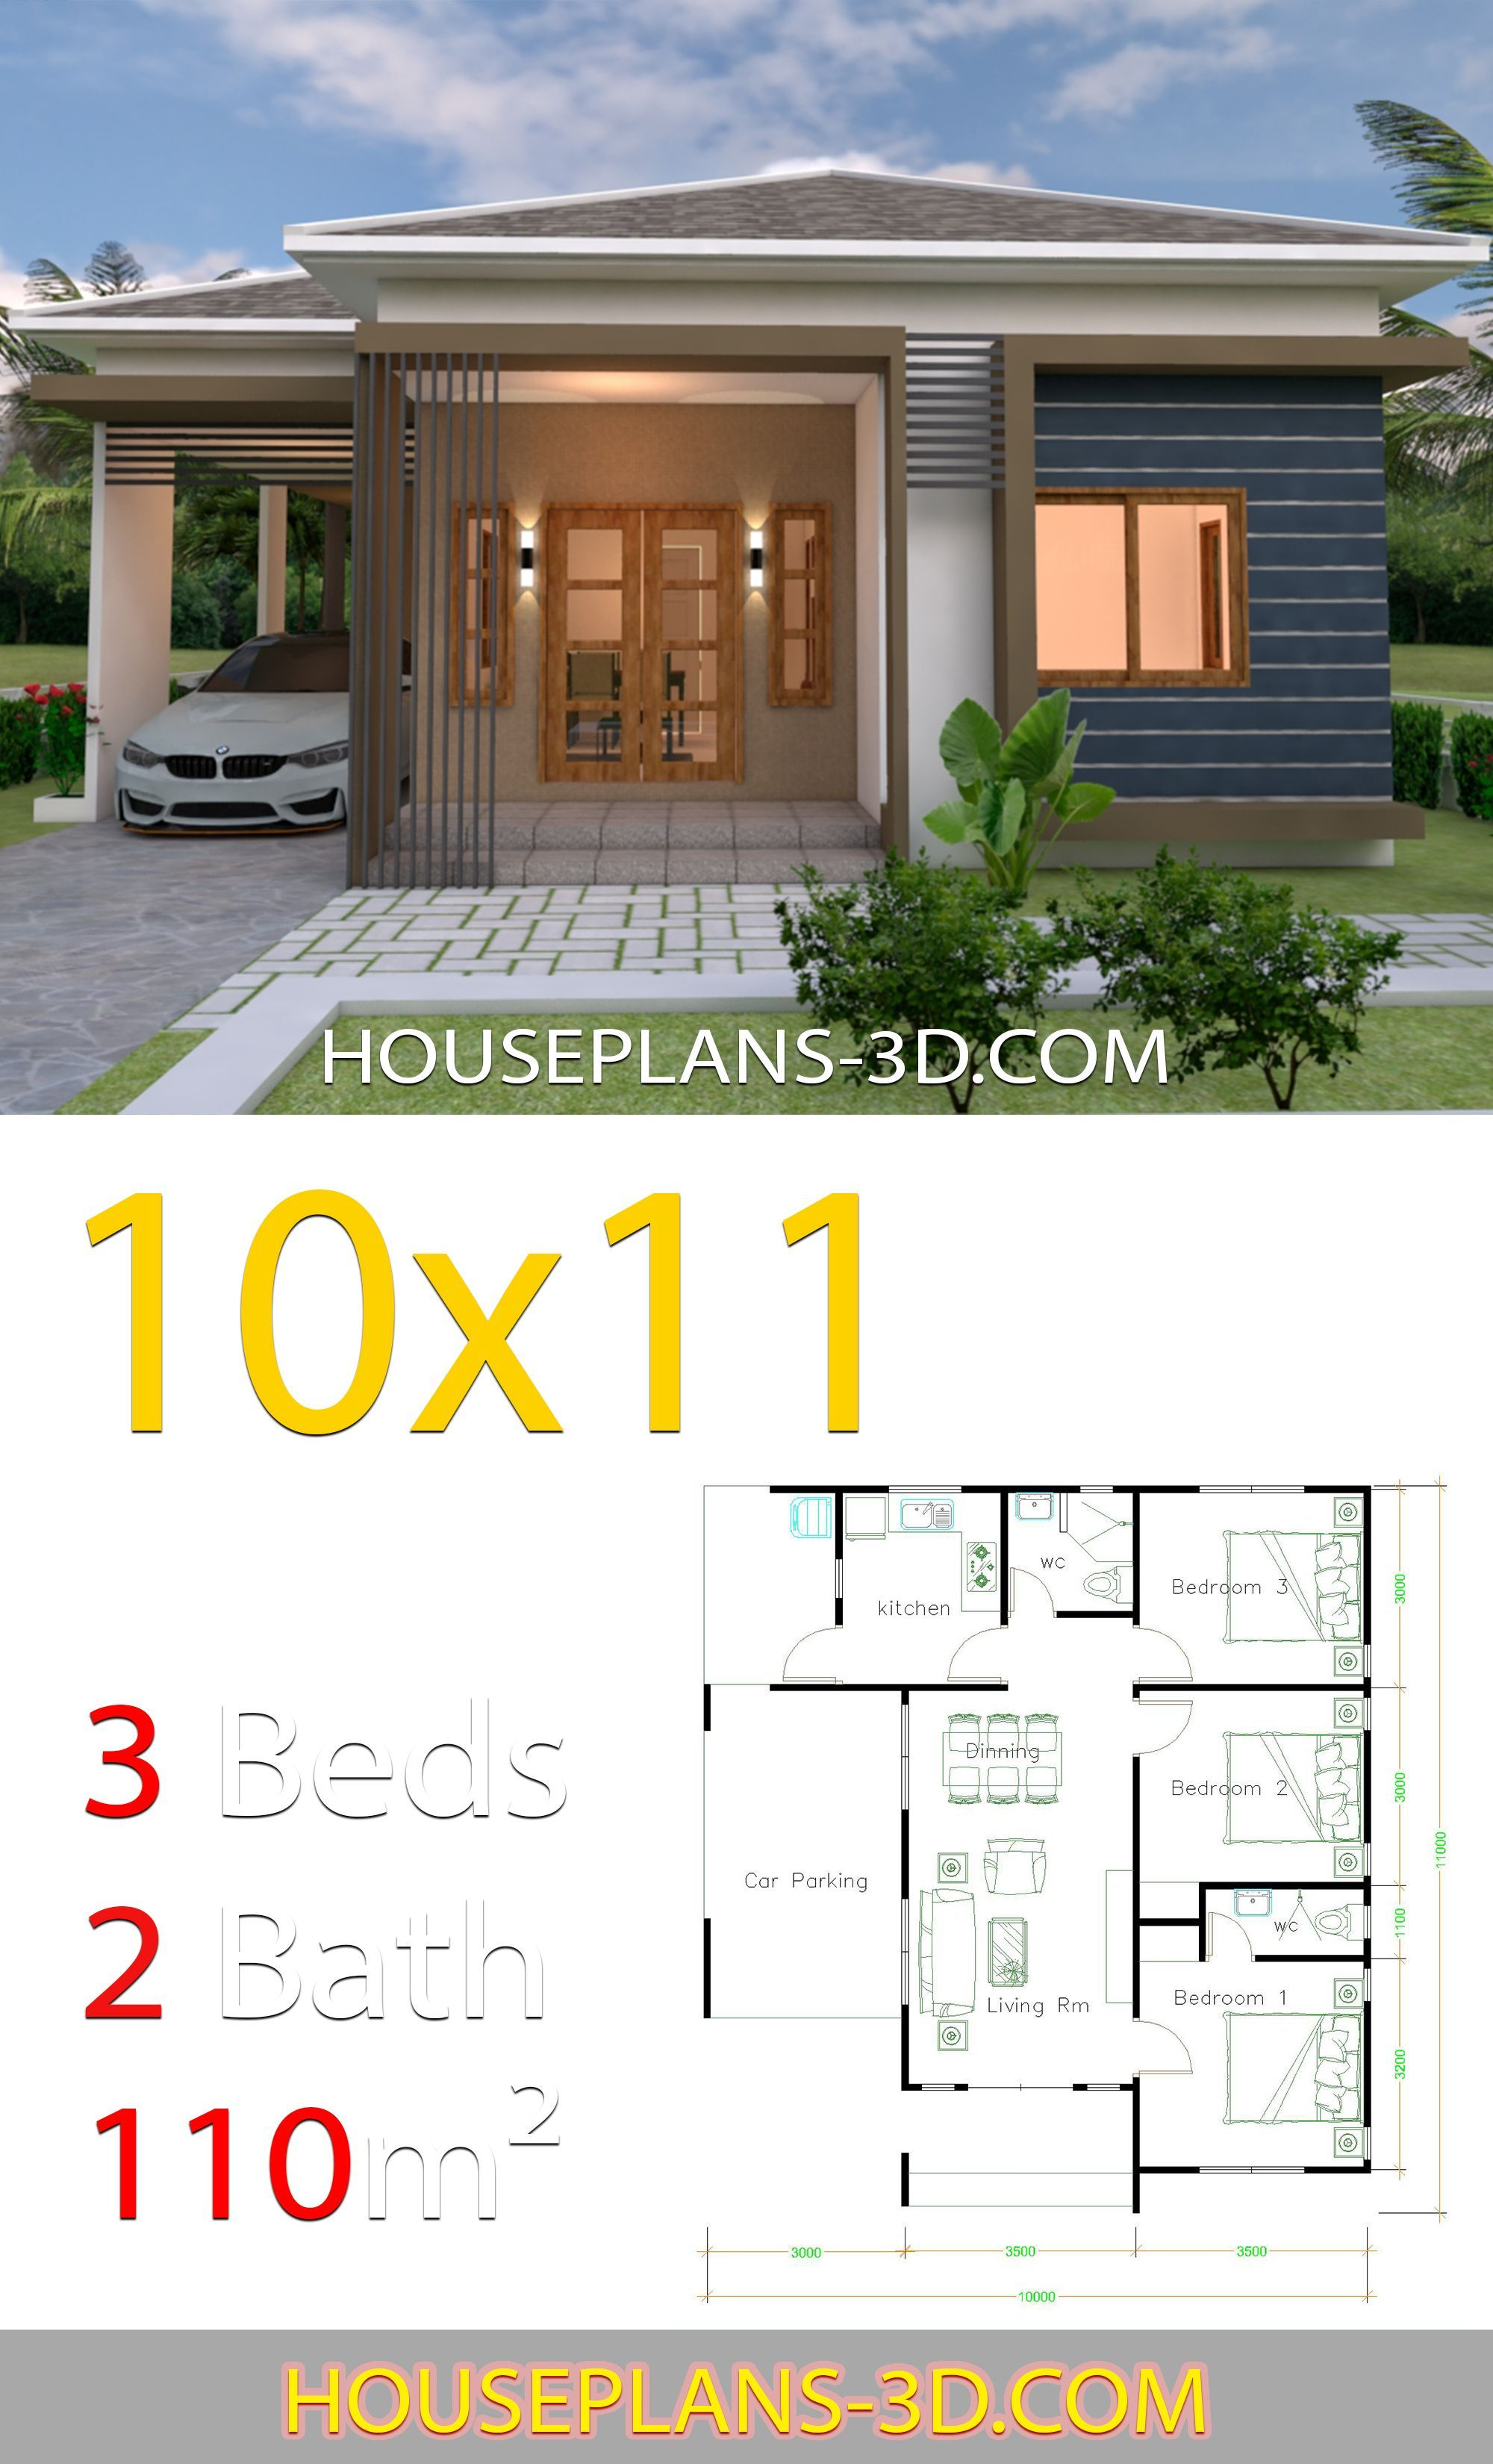 House Design 10x11 With 3 Bedrooms Hip Tiles House Plans 3d House Plans Beautiful House Plans Bungalow House Plans